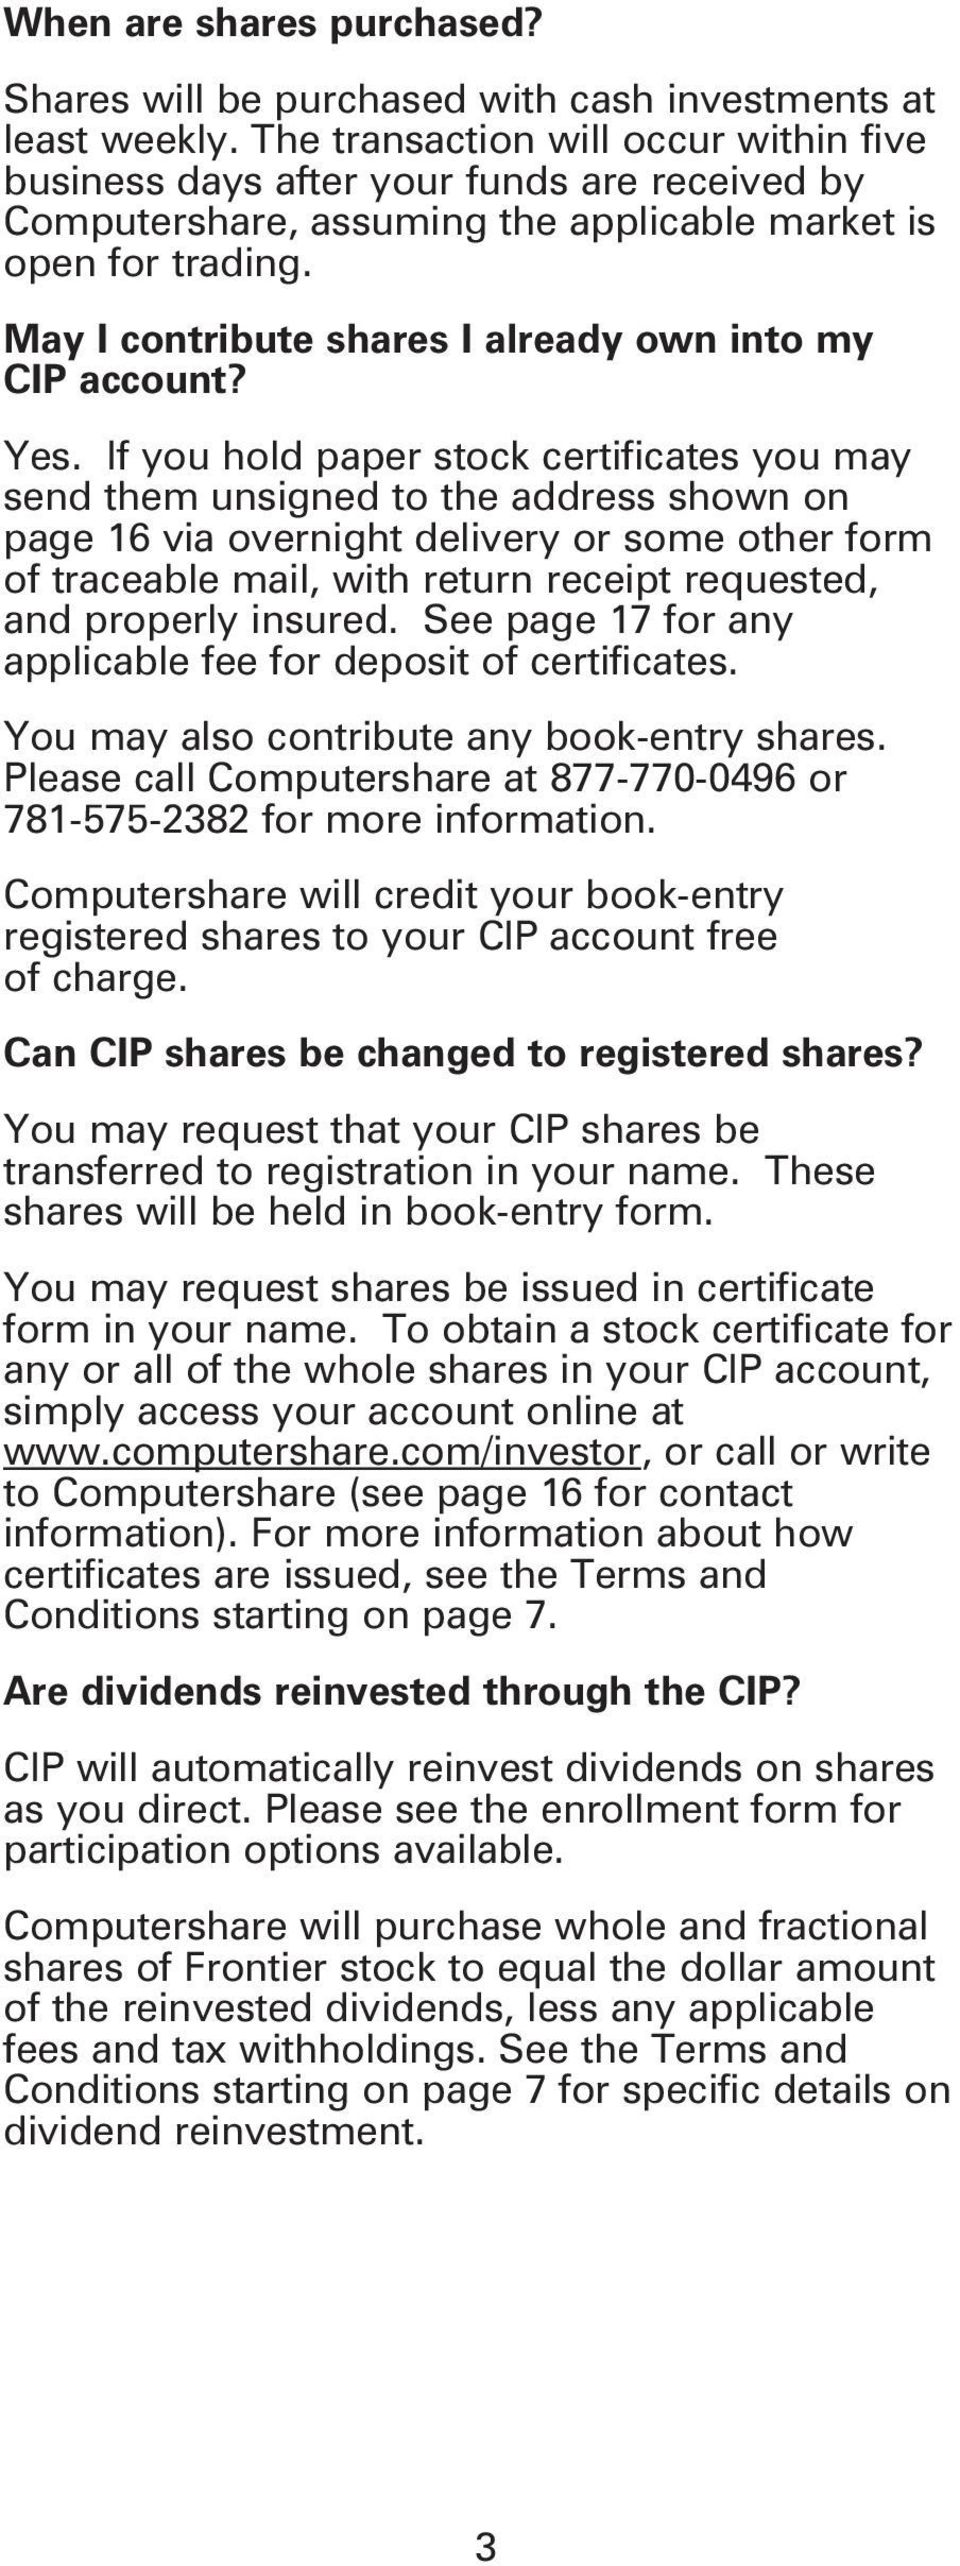 May I contribute shares I already own into my CIP account? Yes.